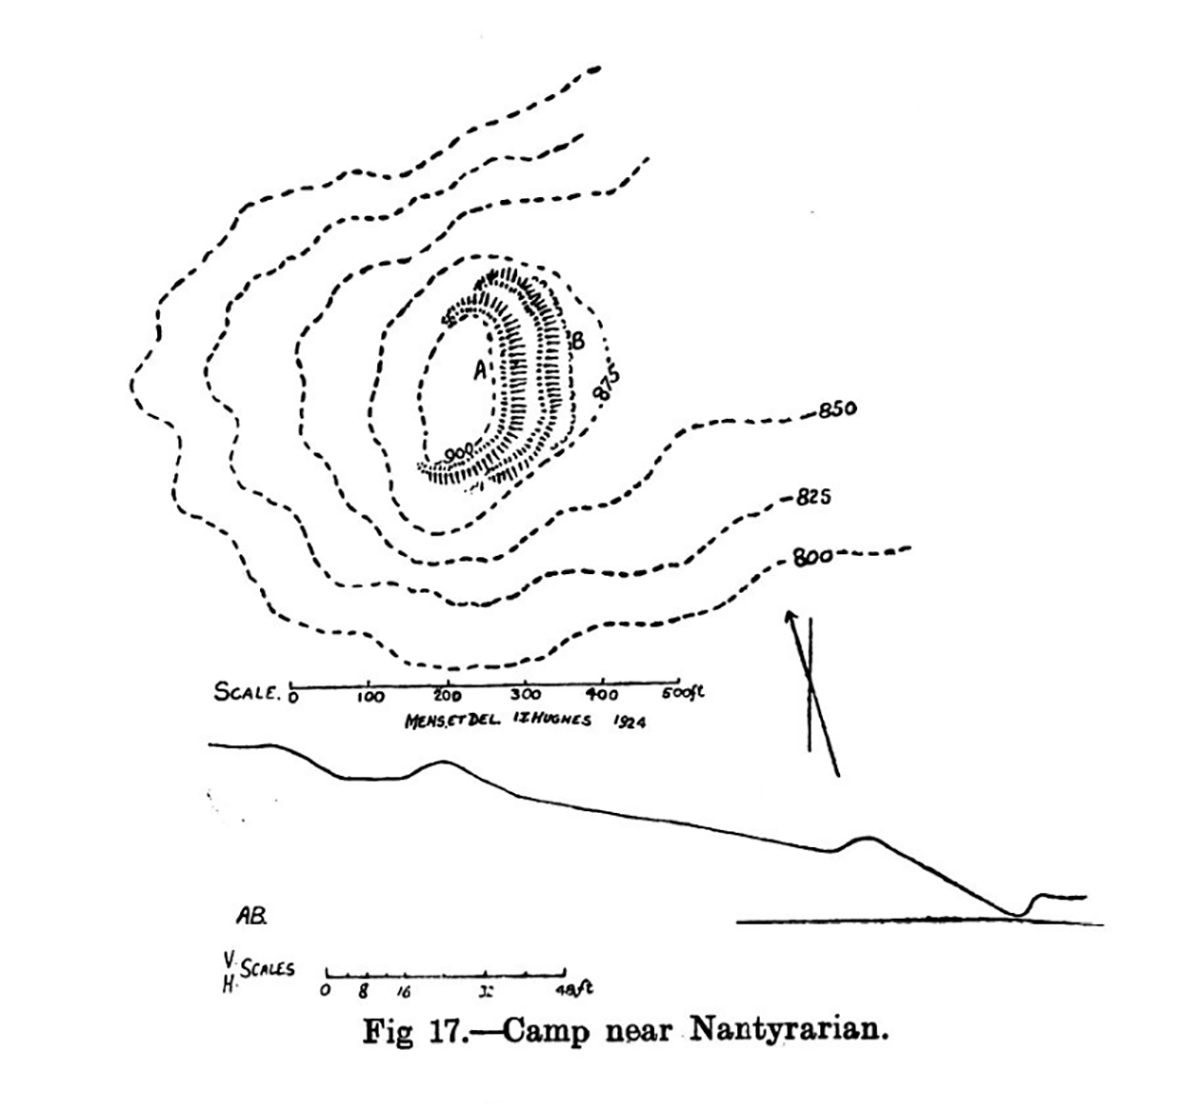 Site plan of Camp near Nantyrarian